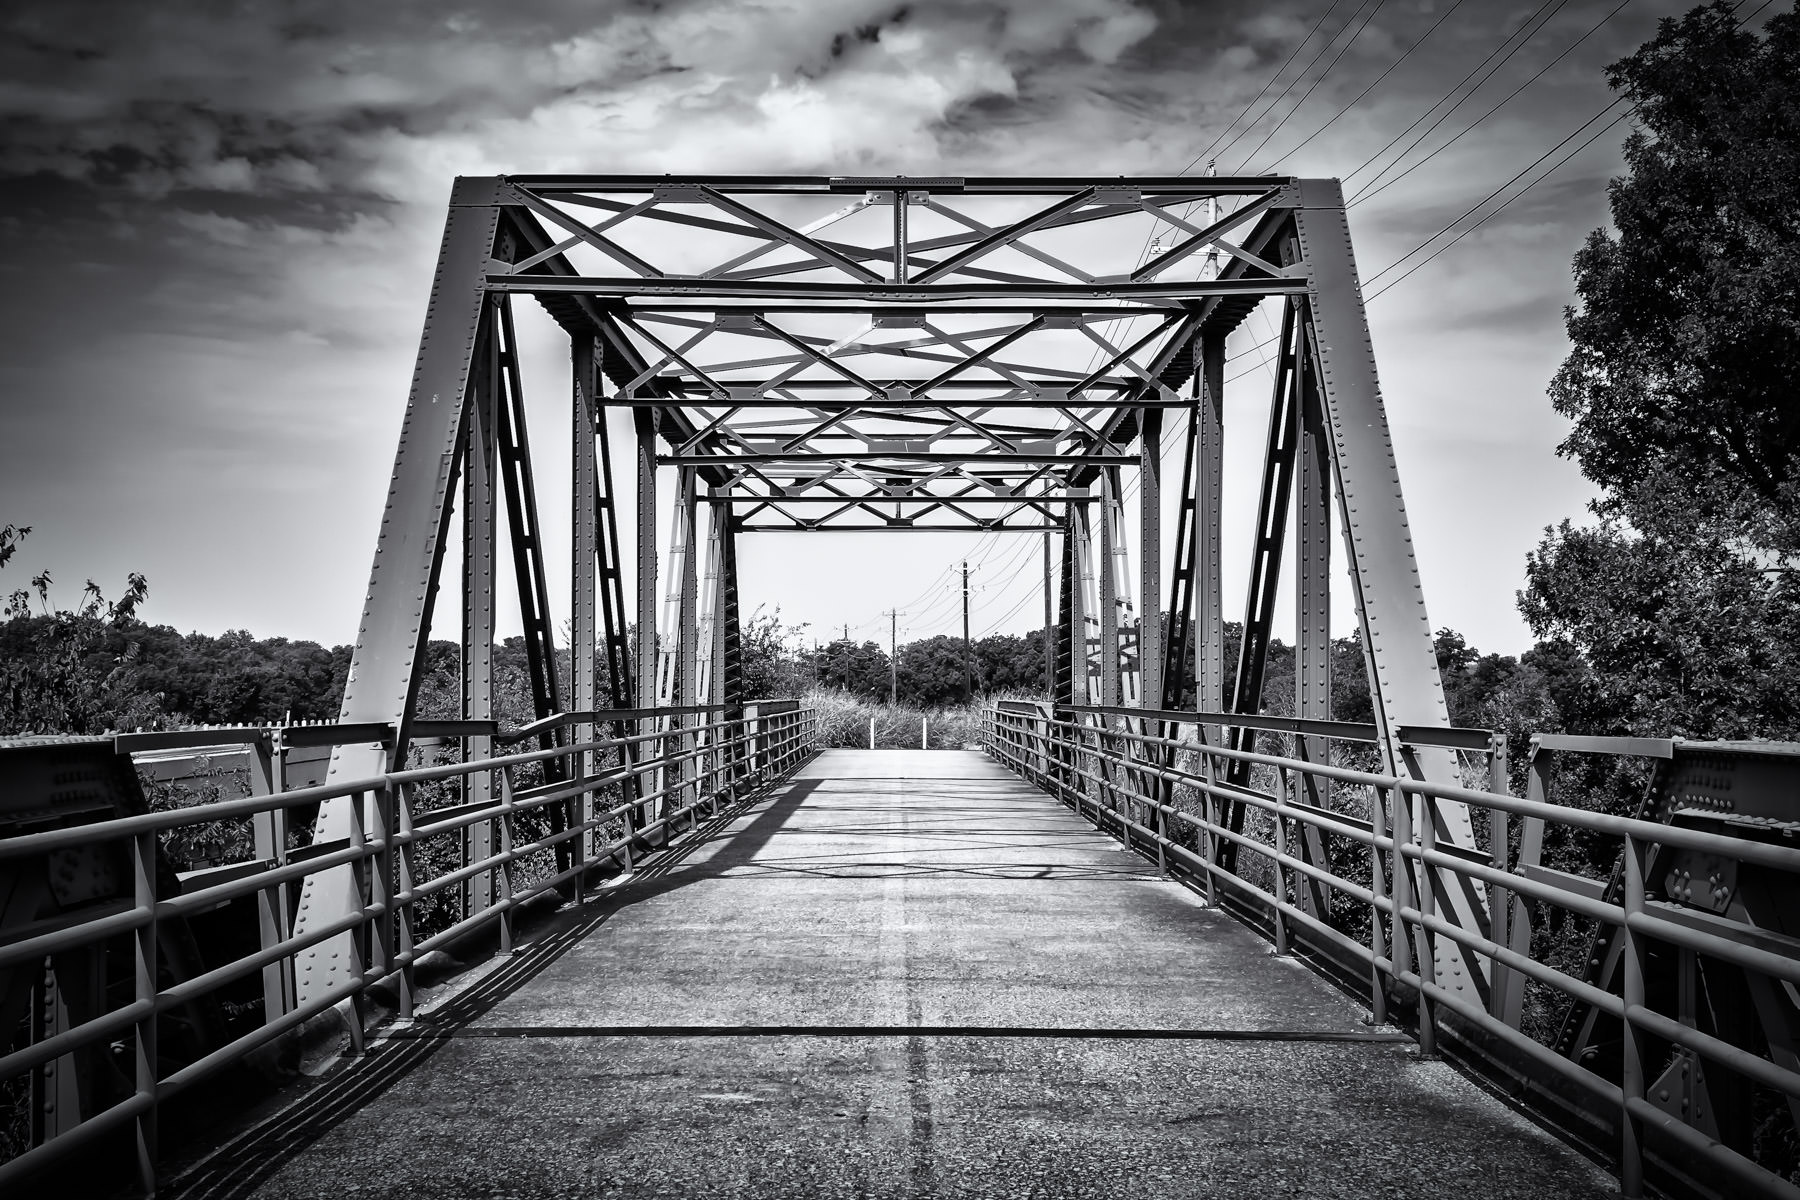 An iron pedestrian bridge spans the Elm Fork of the Trinity River near Aubrey, Texas.